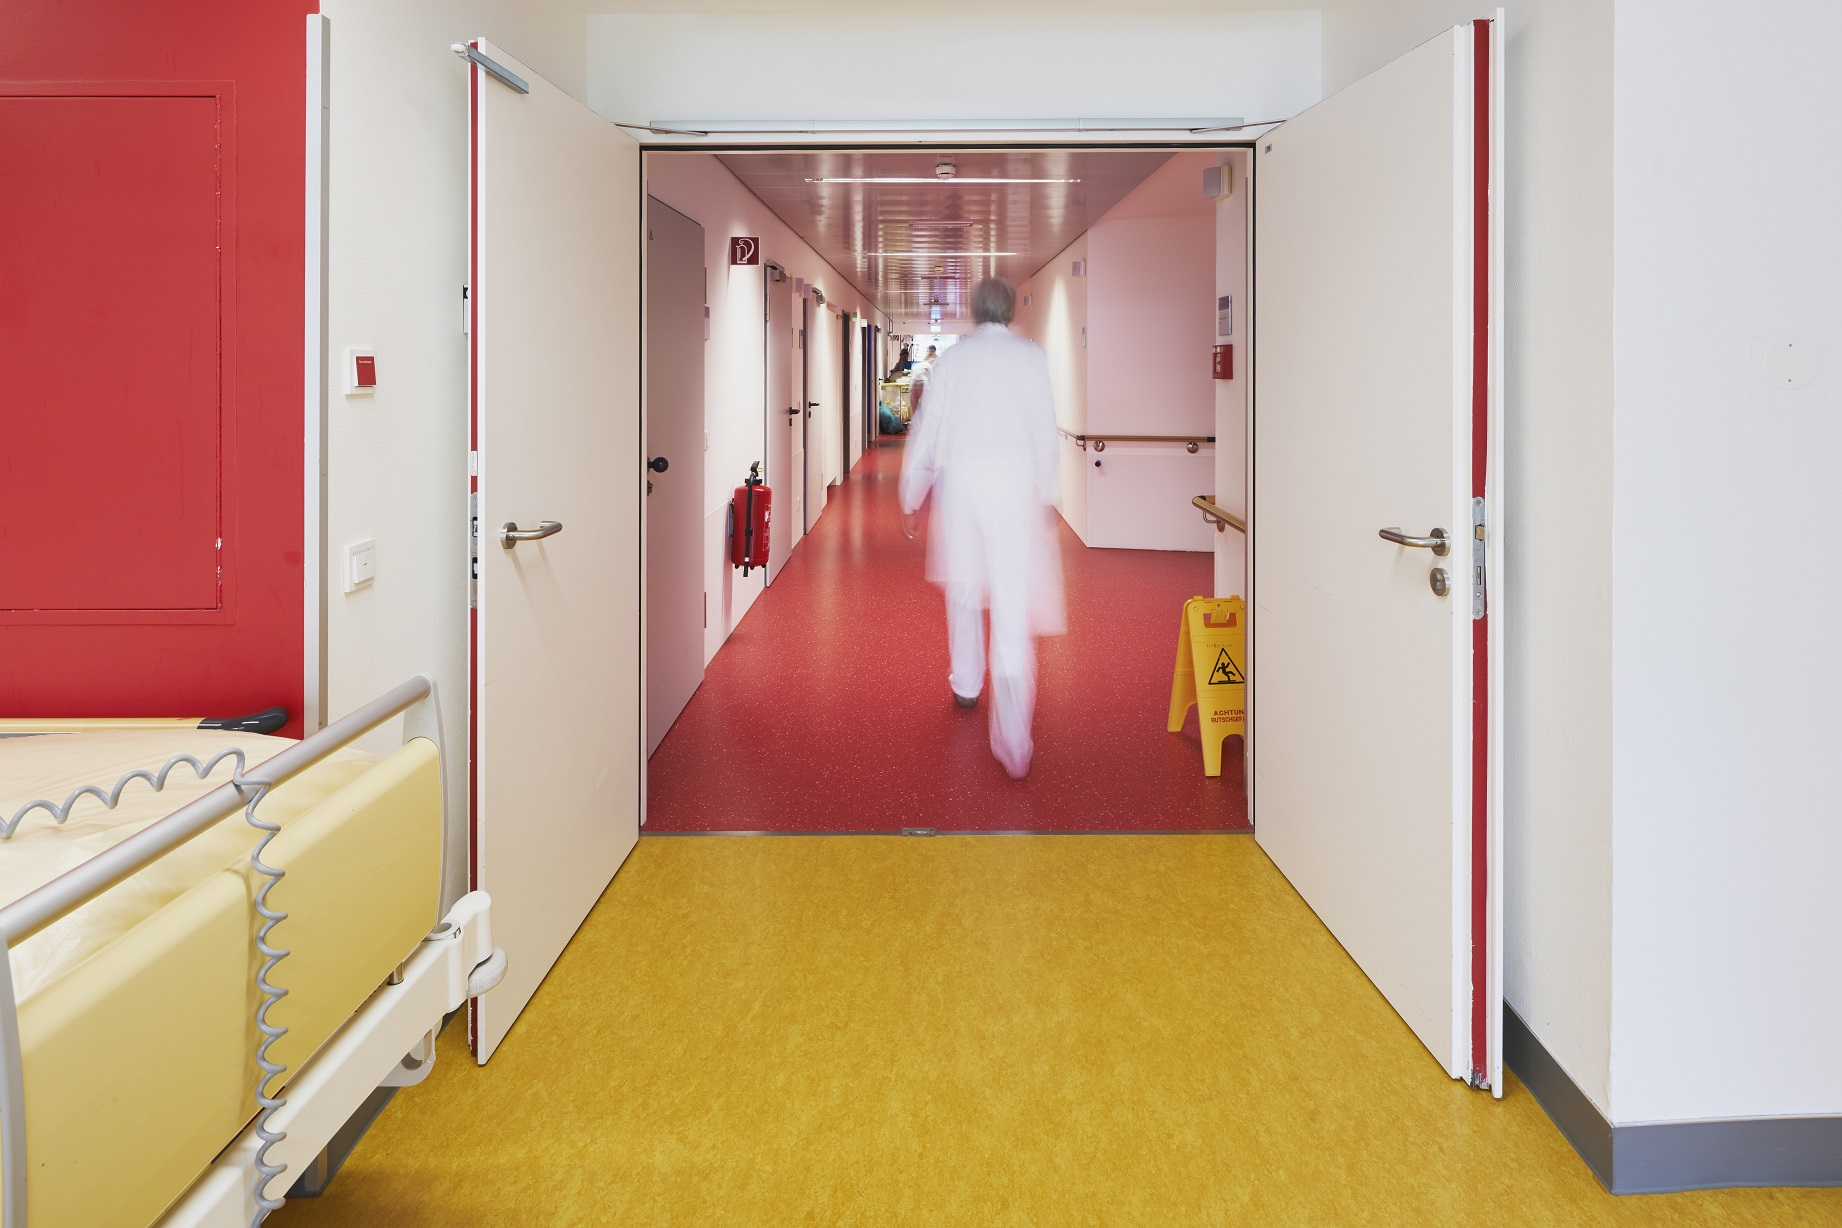 Fire and Life Safety Inspections in Medical Centers and Hospitals